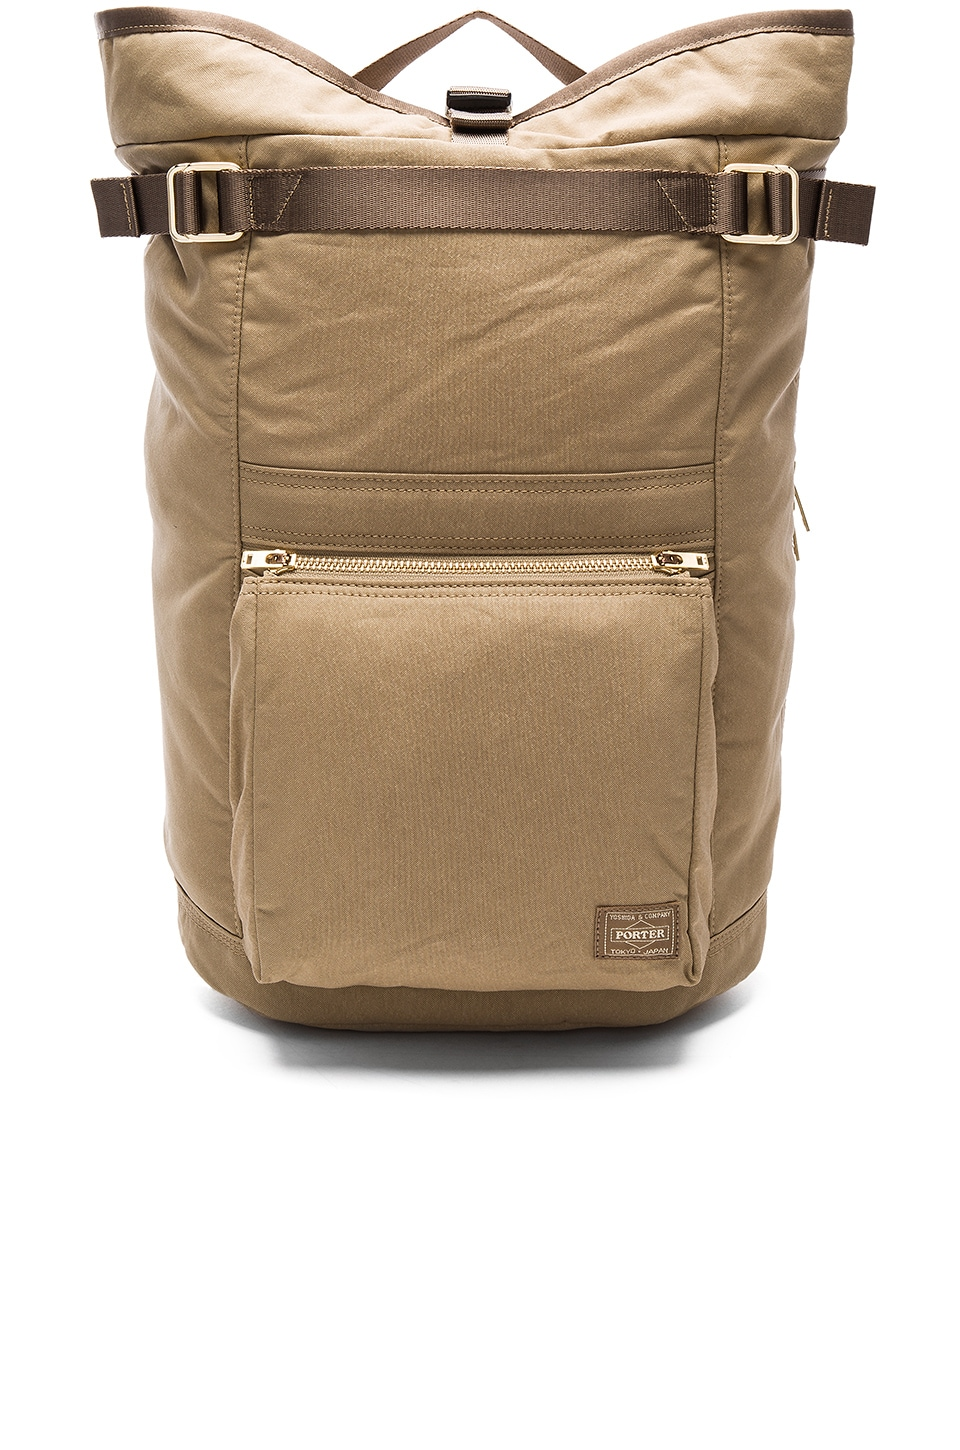 Draft Backpack by Porter-Yoshida & Co.